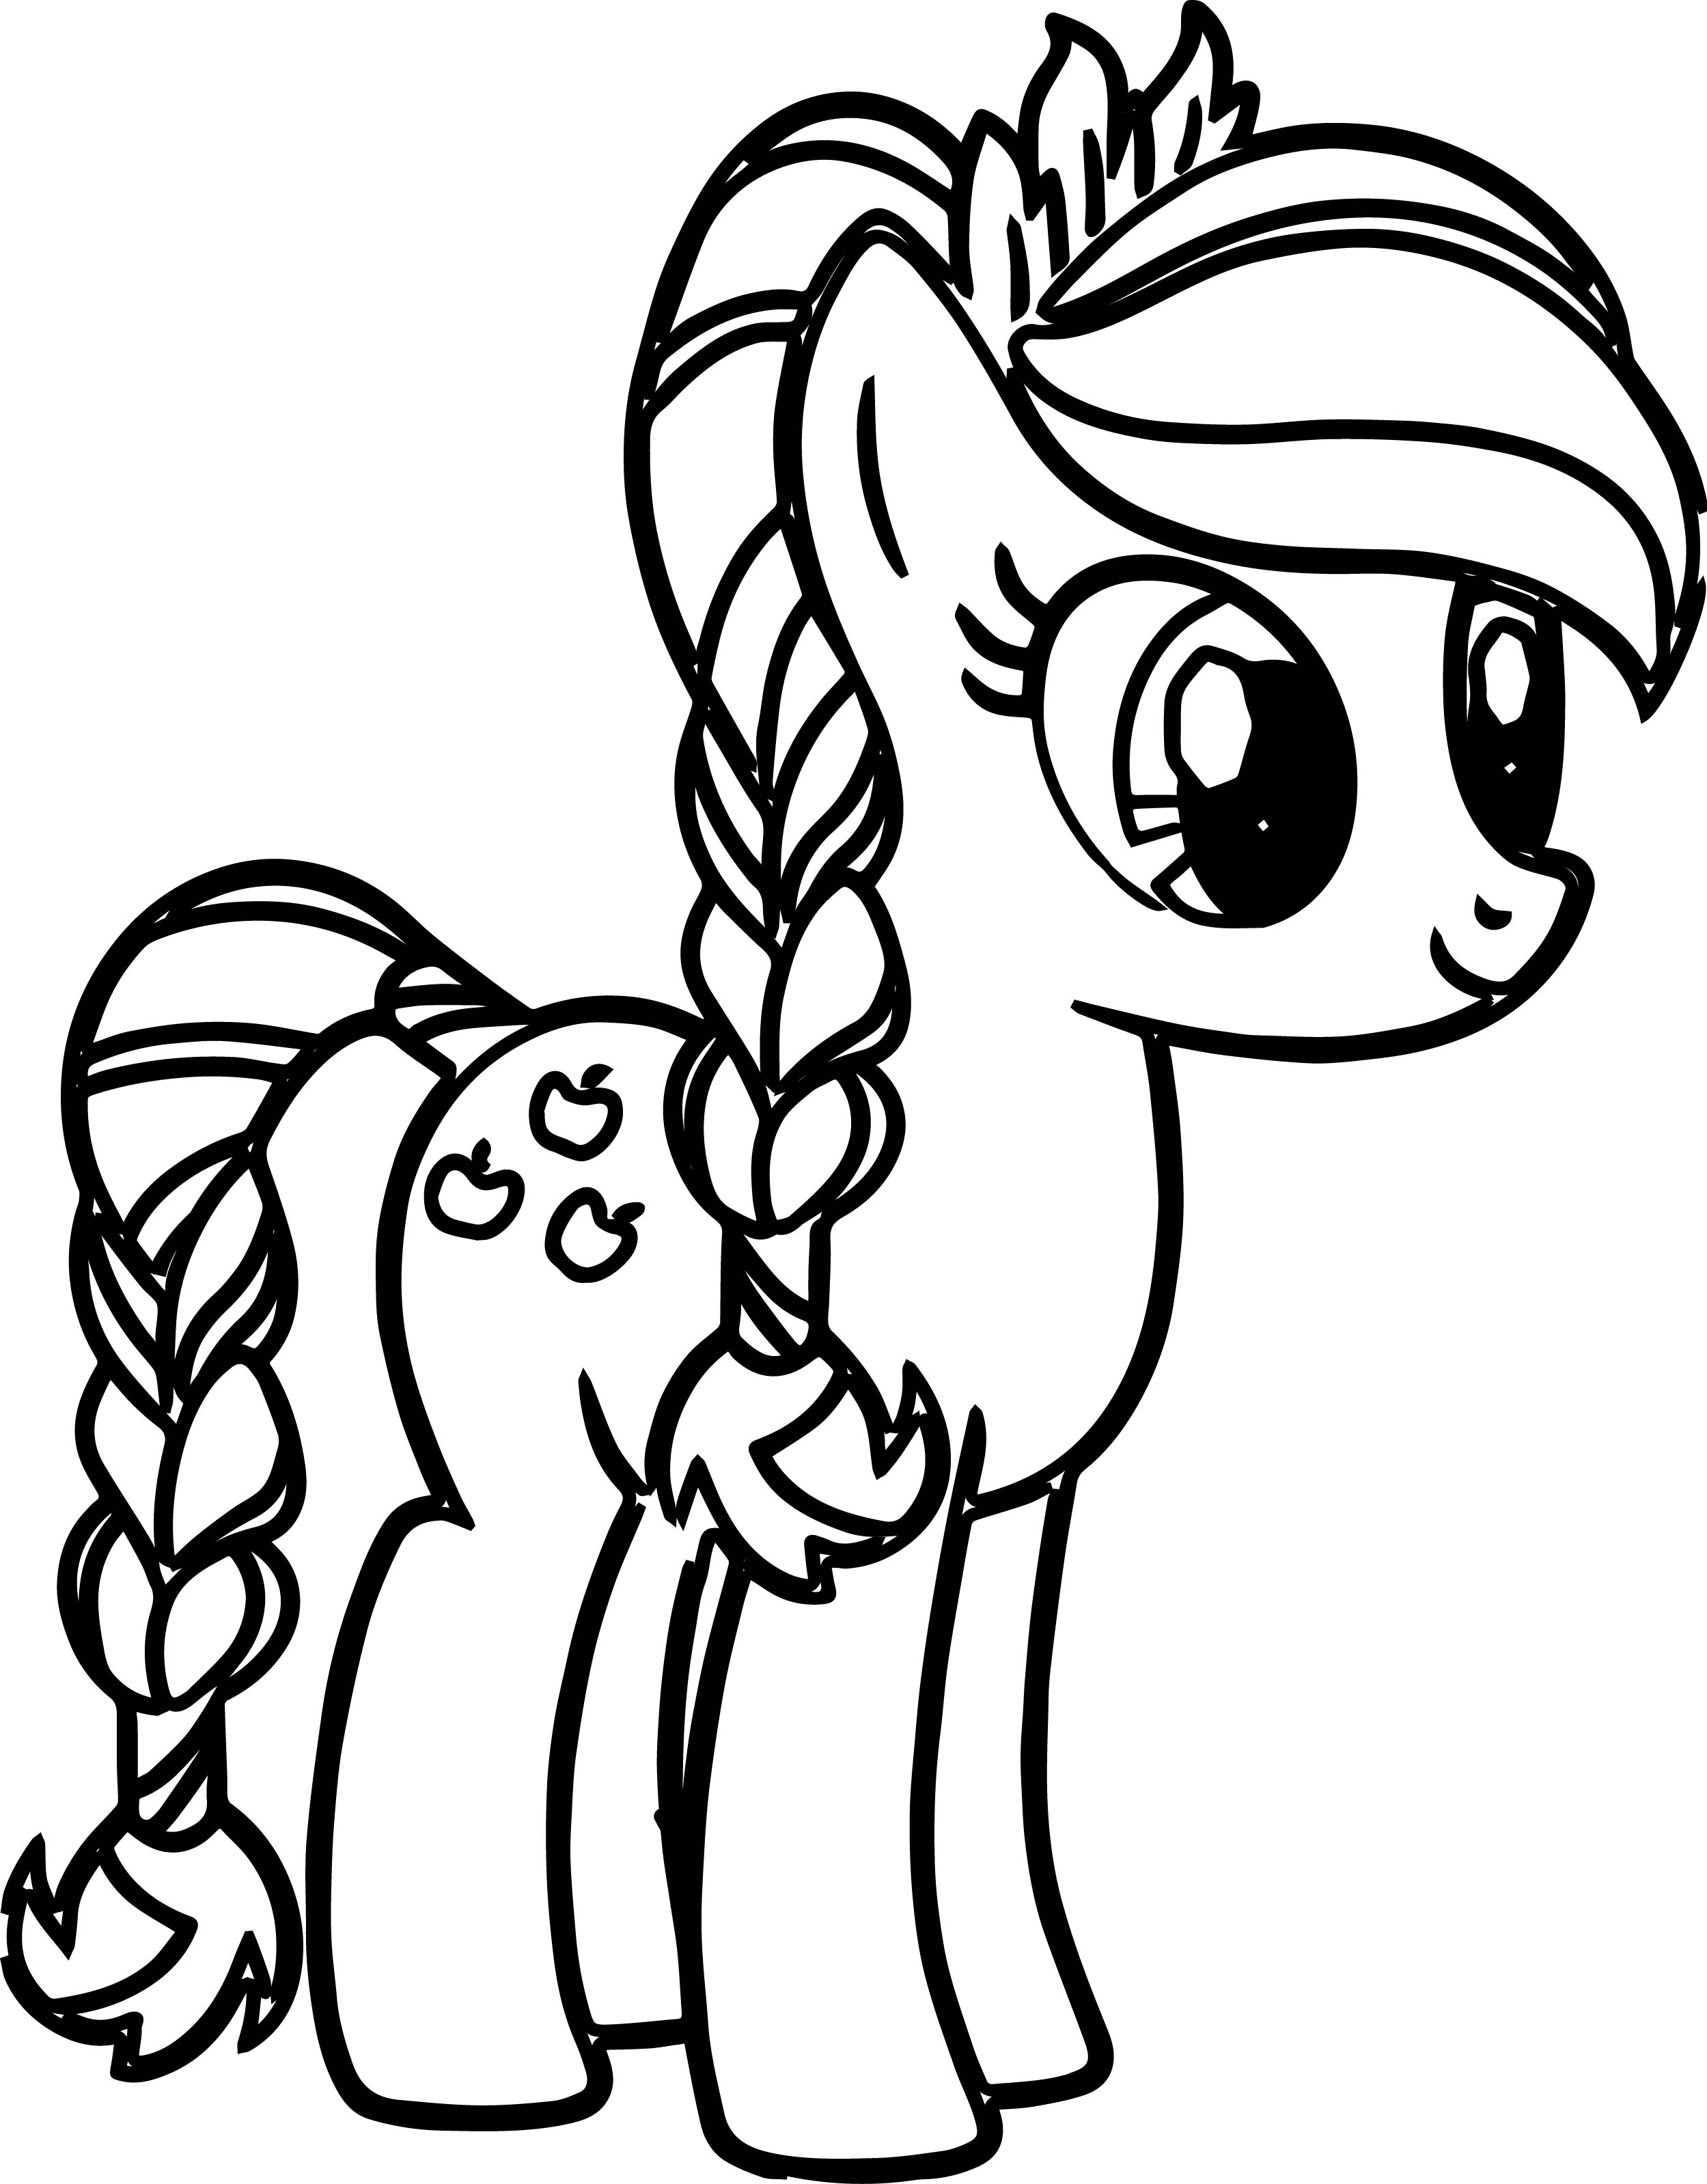 my little pony printables free my little pony coloring pages with all ponies coloring home pony printables little my free